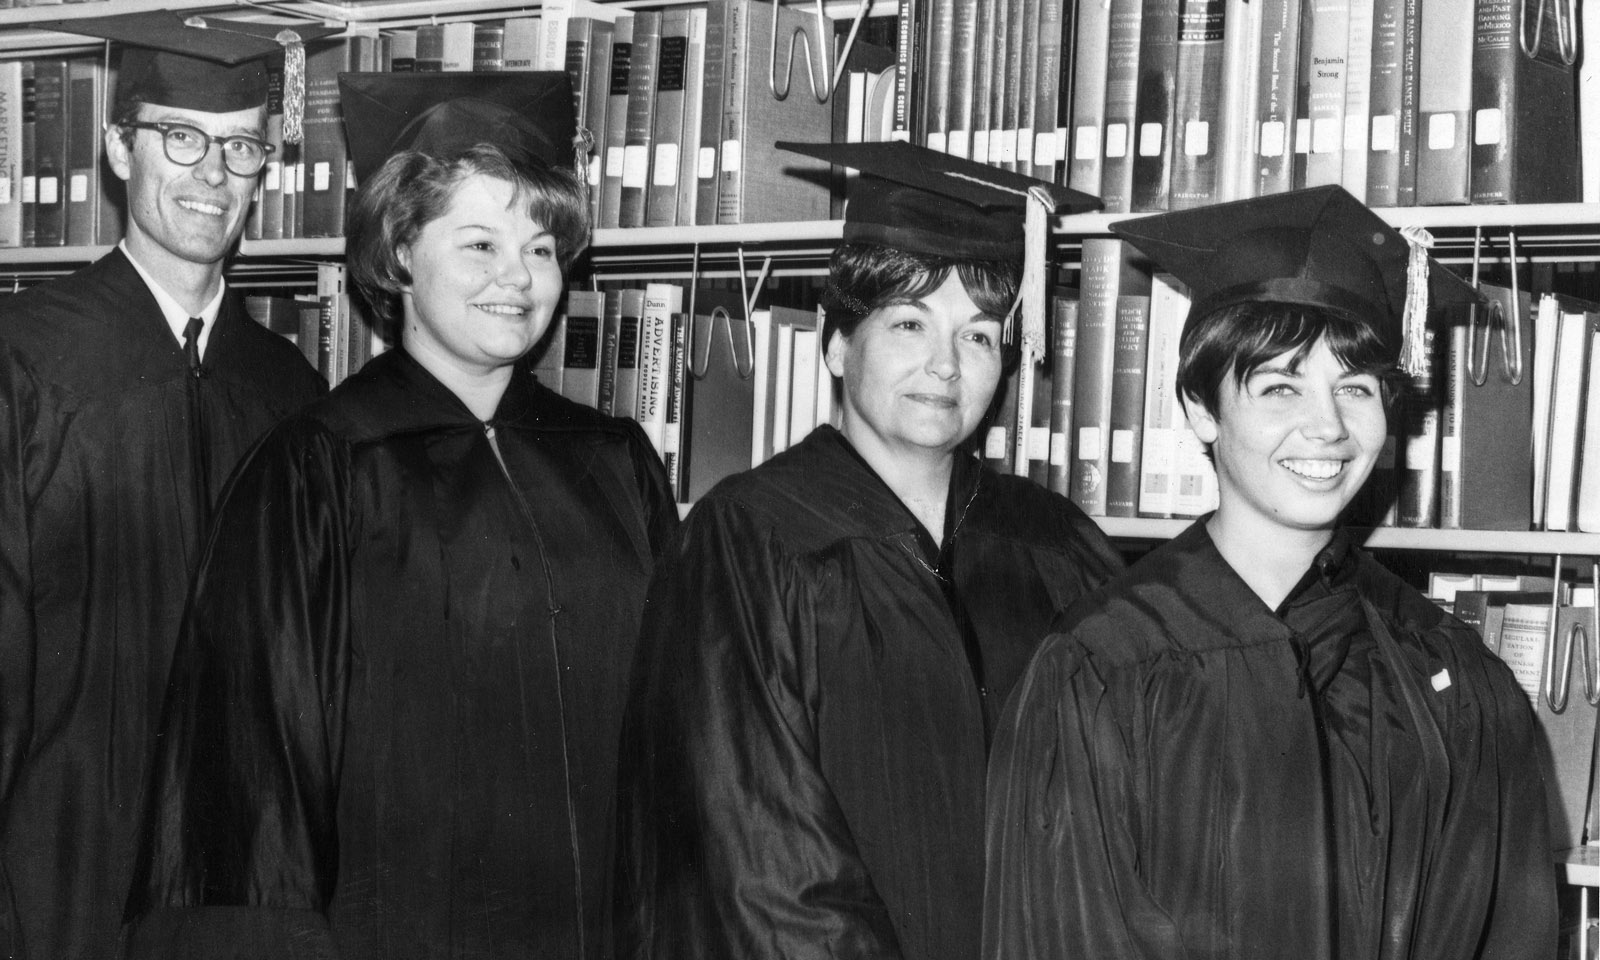 The first four graduates of CSUDH stand in the campus library, June 9, 1967. (left to right) William Hart, Pamela Striplin, Othi